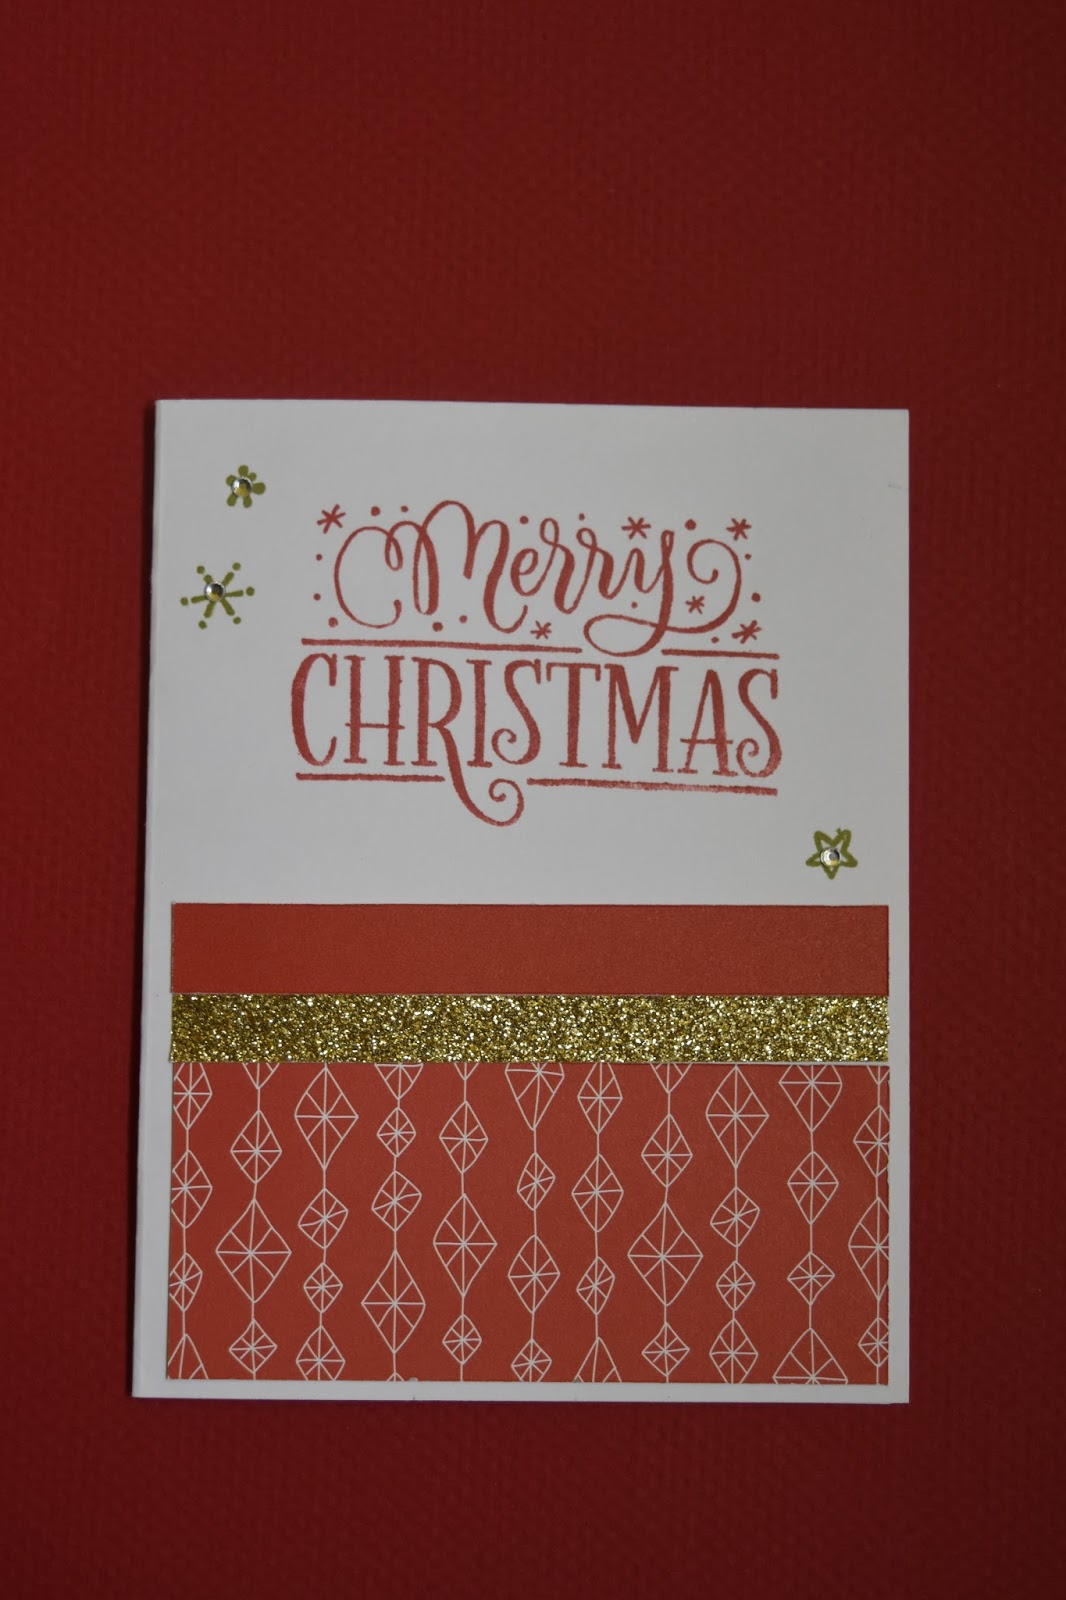 Marvelous Paper: Workshop Your Way - Happy Holidays Cardmaking Kit